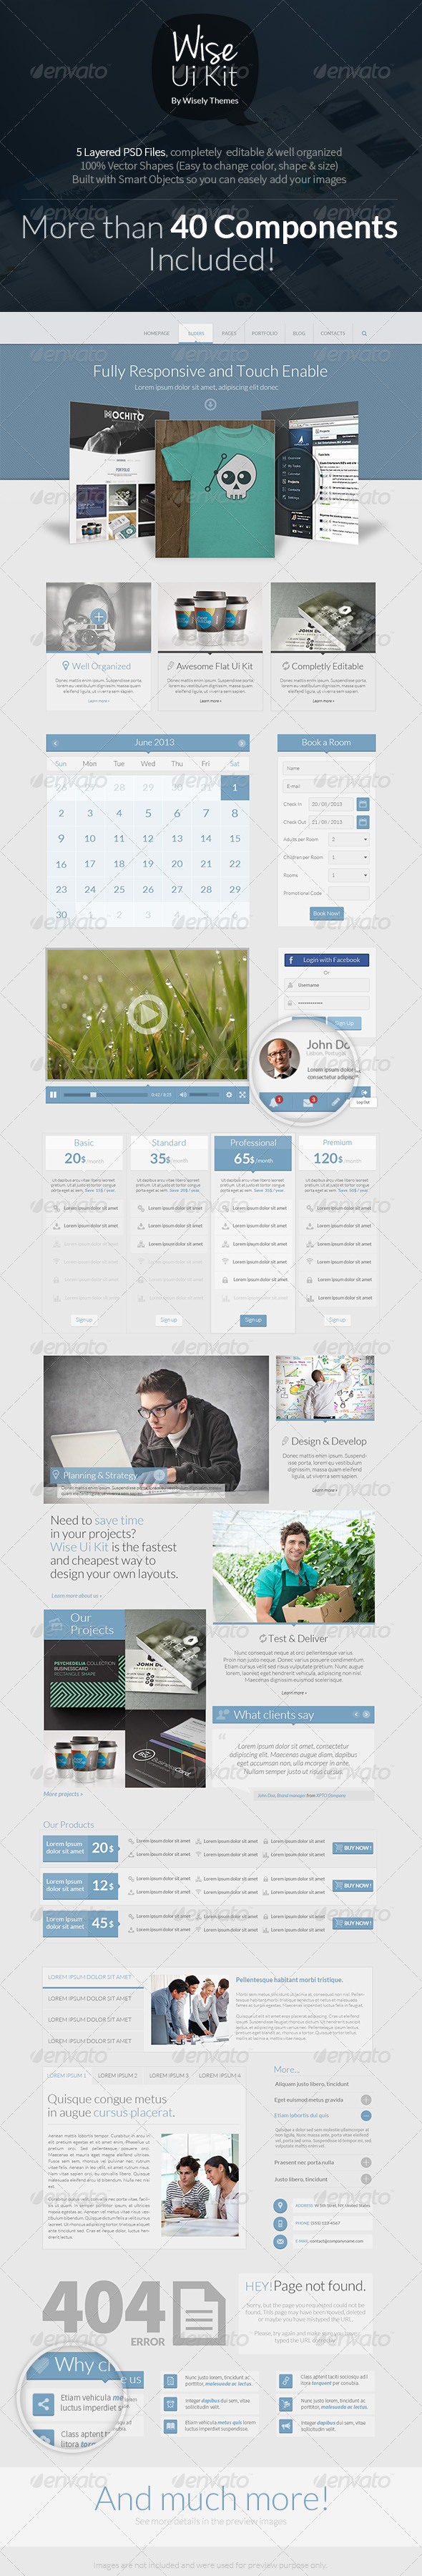 GraphicRiver Wise PSD Ui Kit 5610728